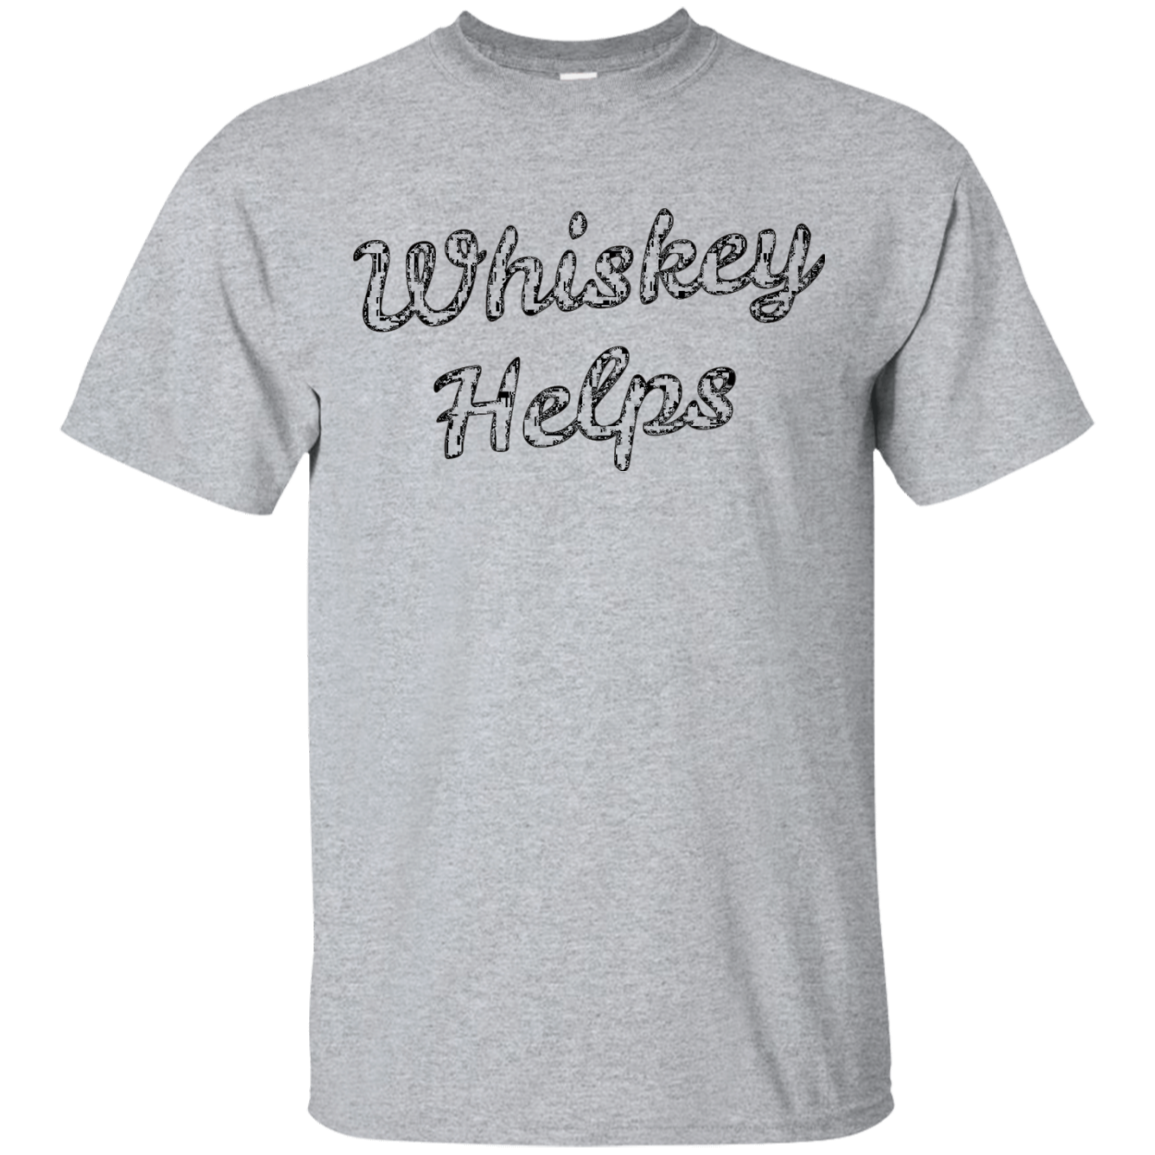 Whiskey Helps Funny Whiskey Alcohol Shirt The Gentle Sirs - T-Shirt